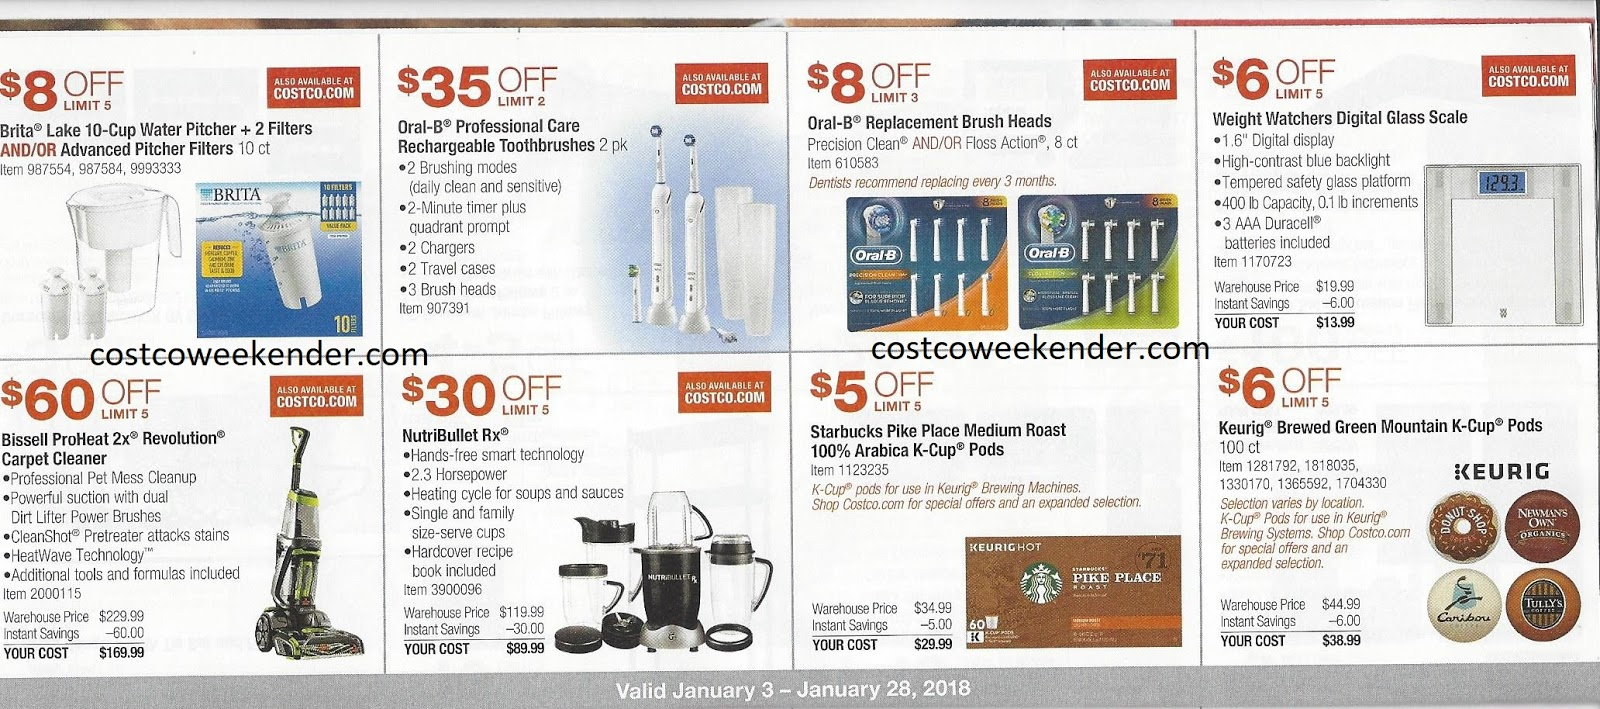 Costco enterprise coupon code 2018